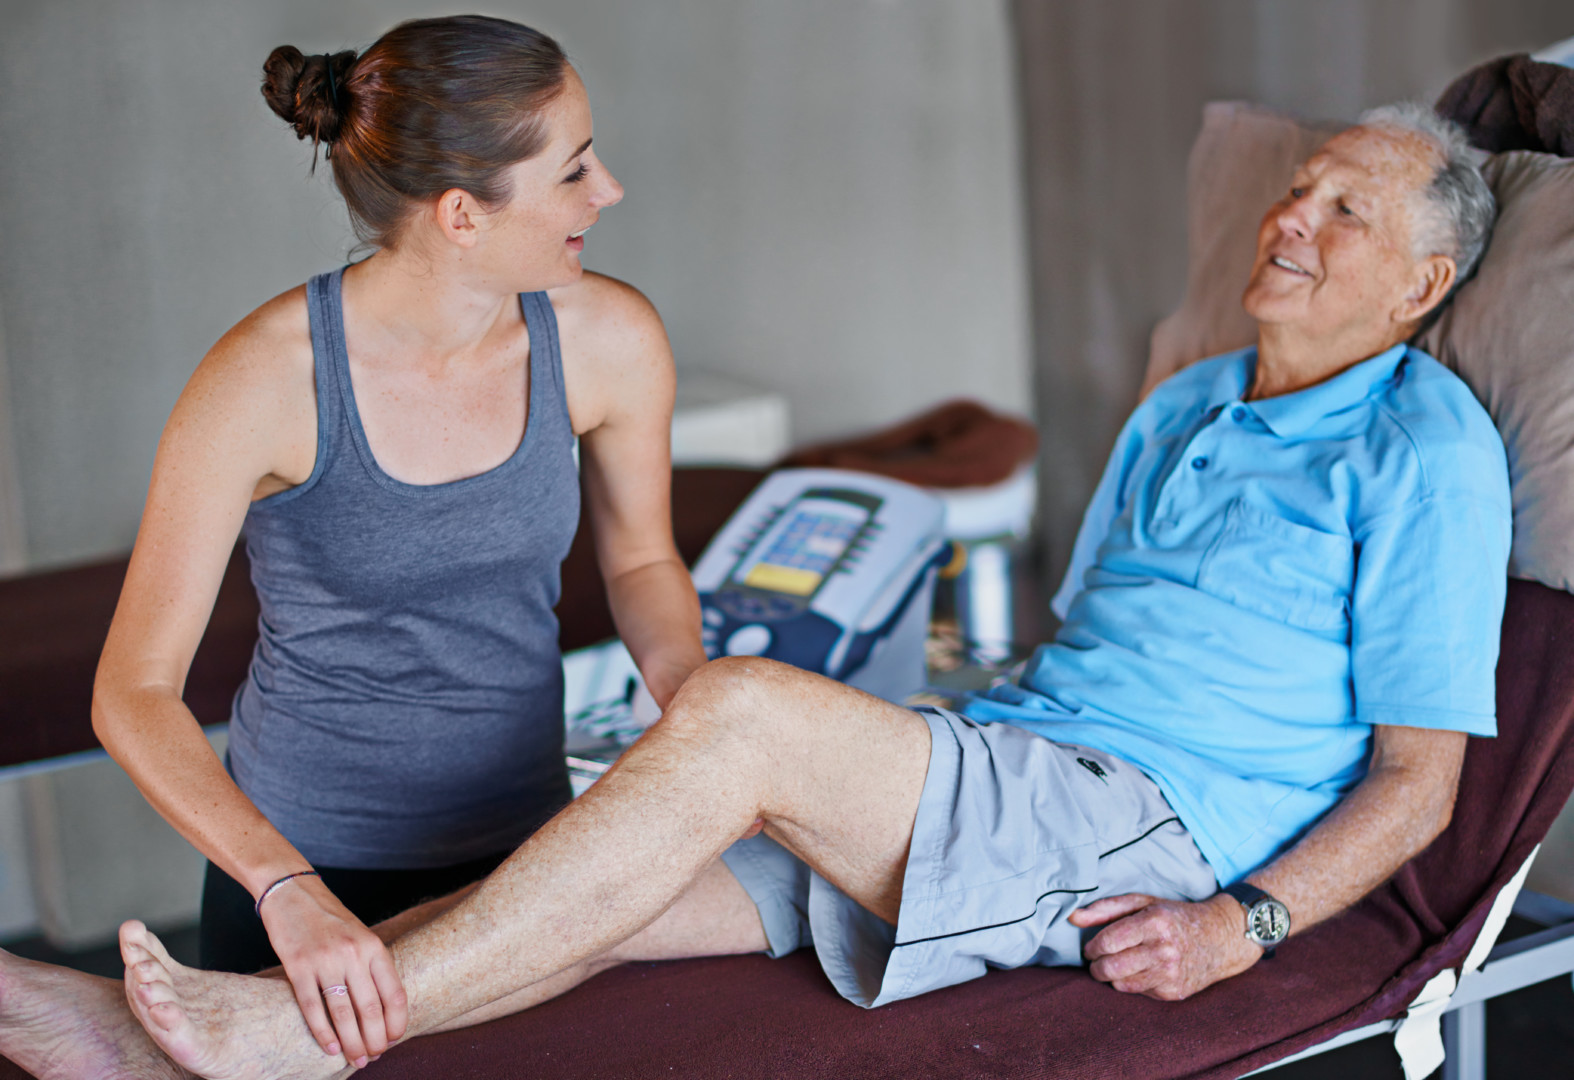 Shot of an elderly man having a physiotherapy session with a female therapist